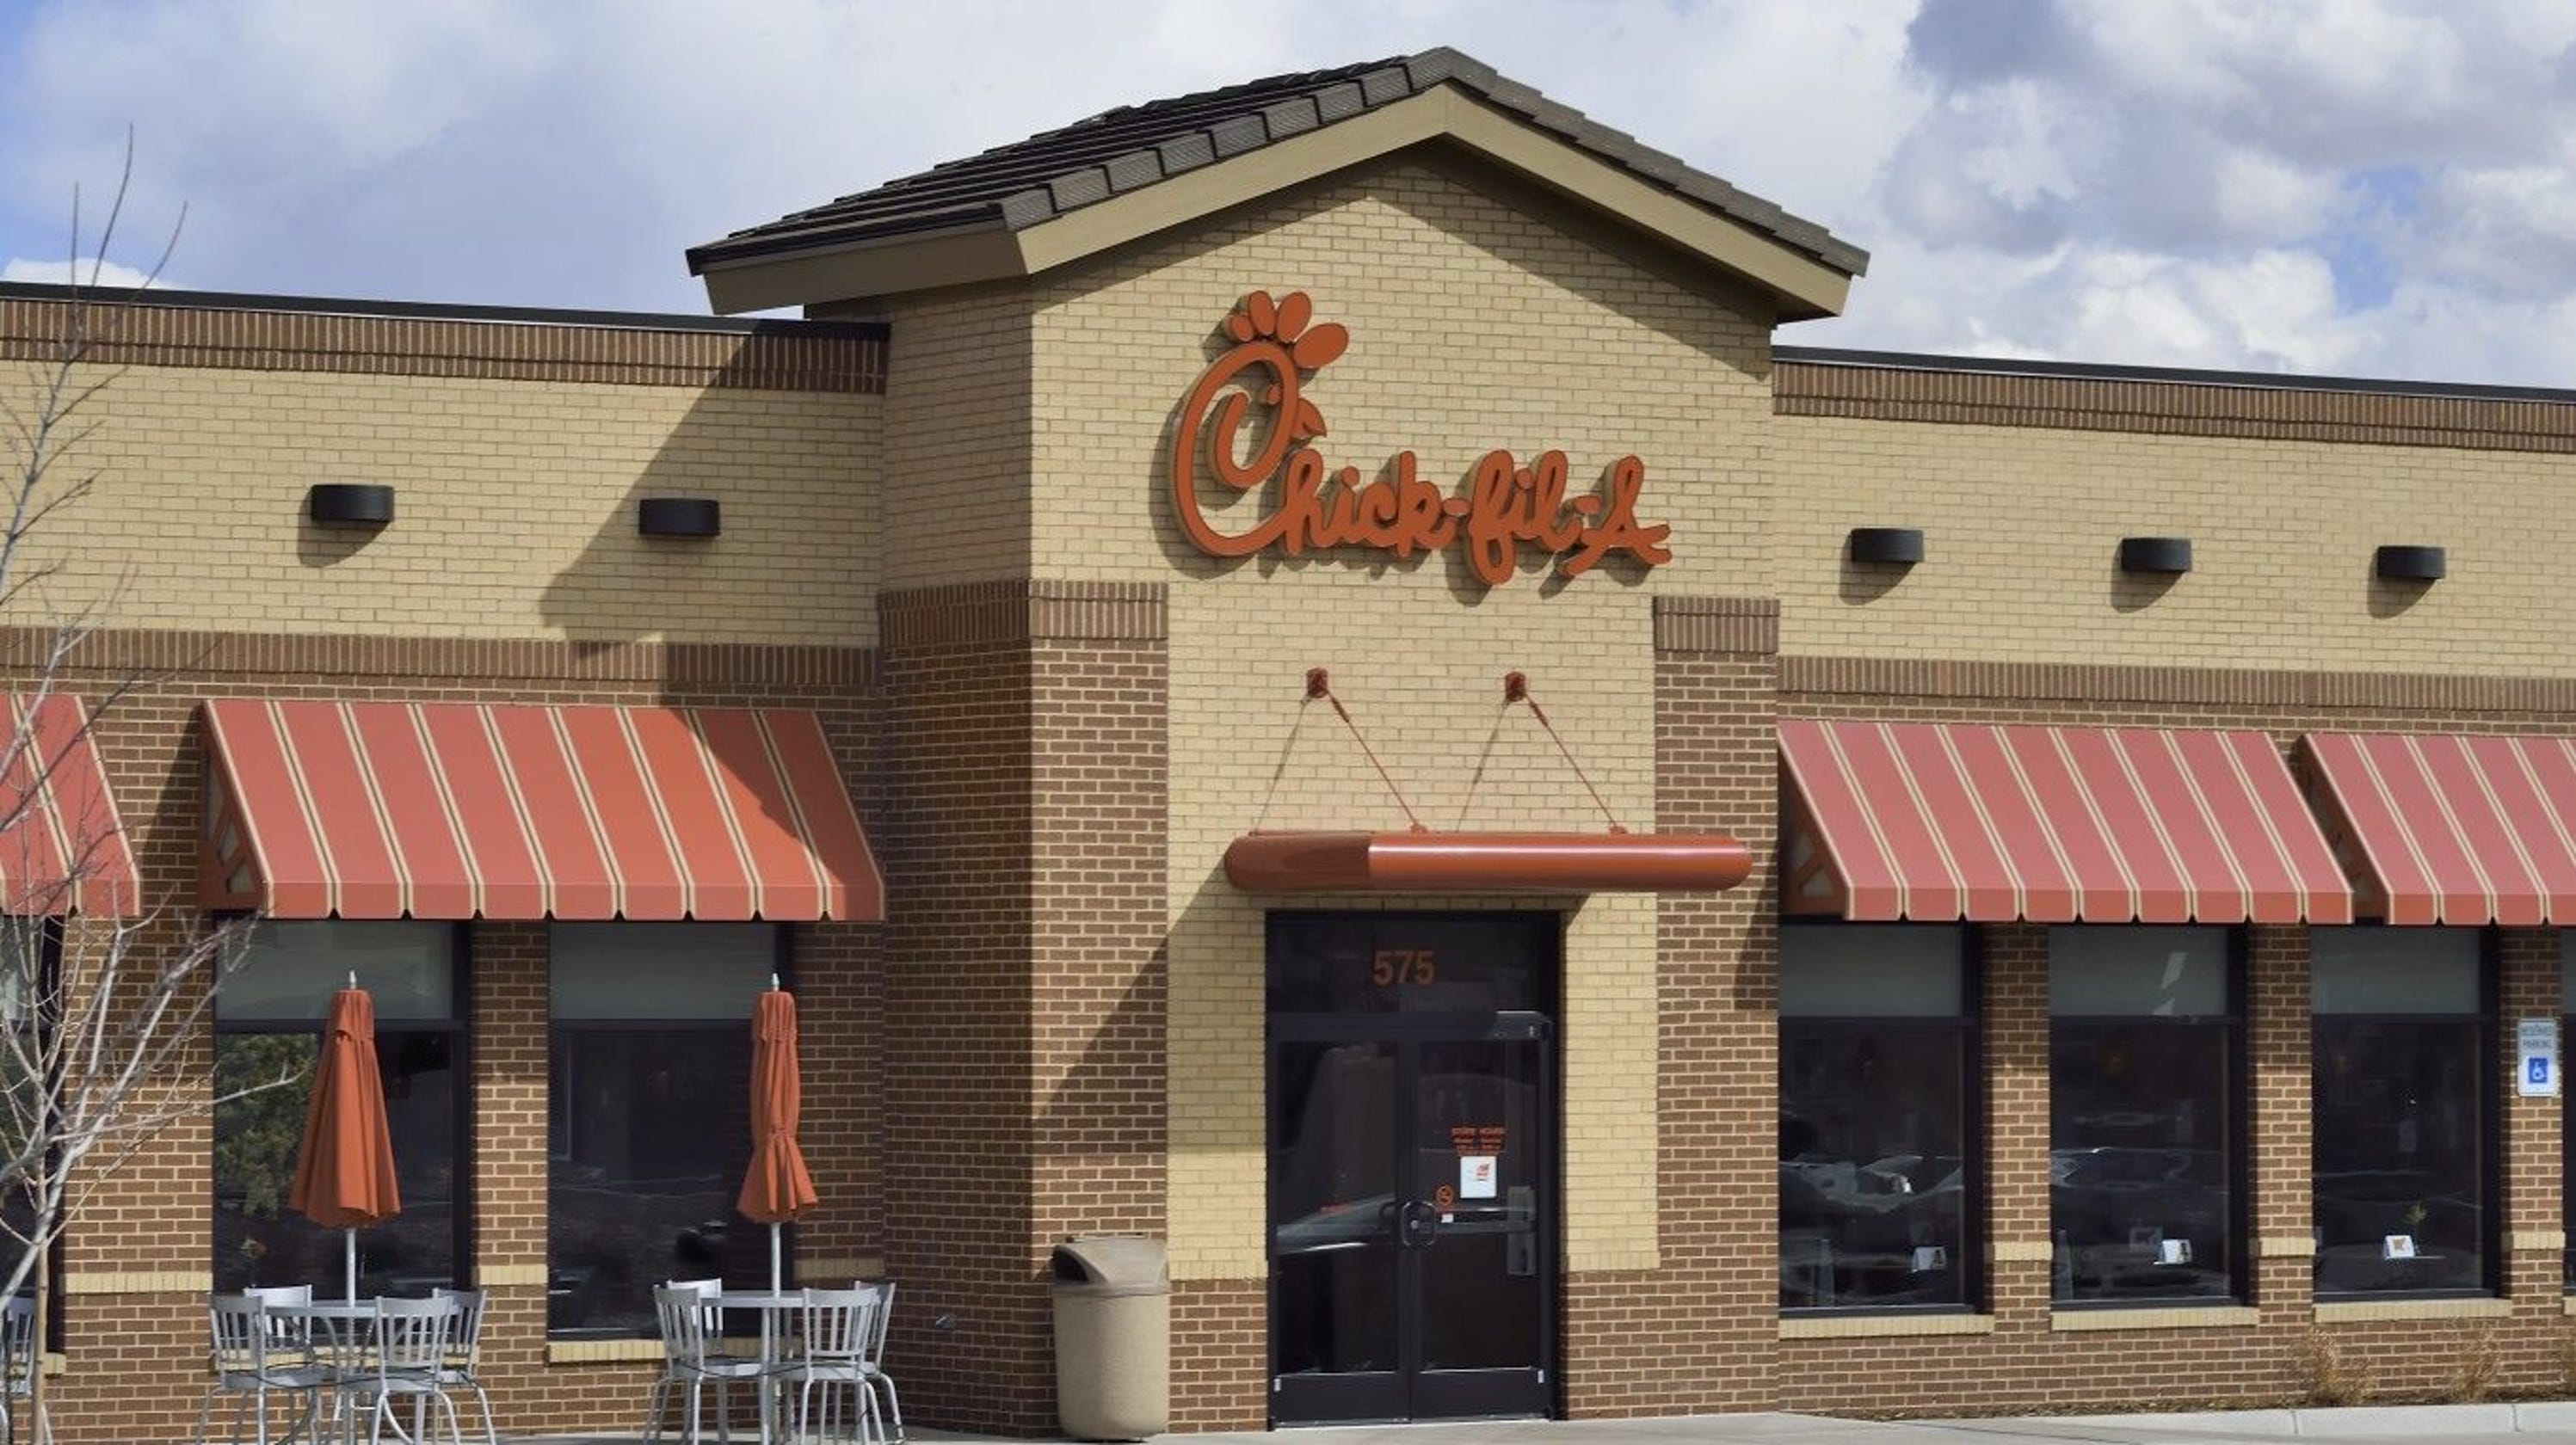 Why did the cow cross the road? To get to Chick-fil-A, obviously. Driver gets funny video